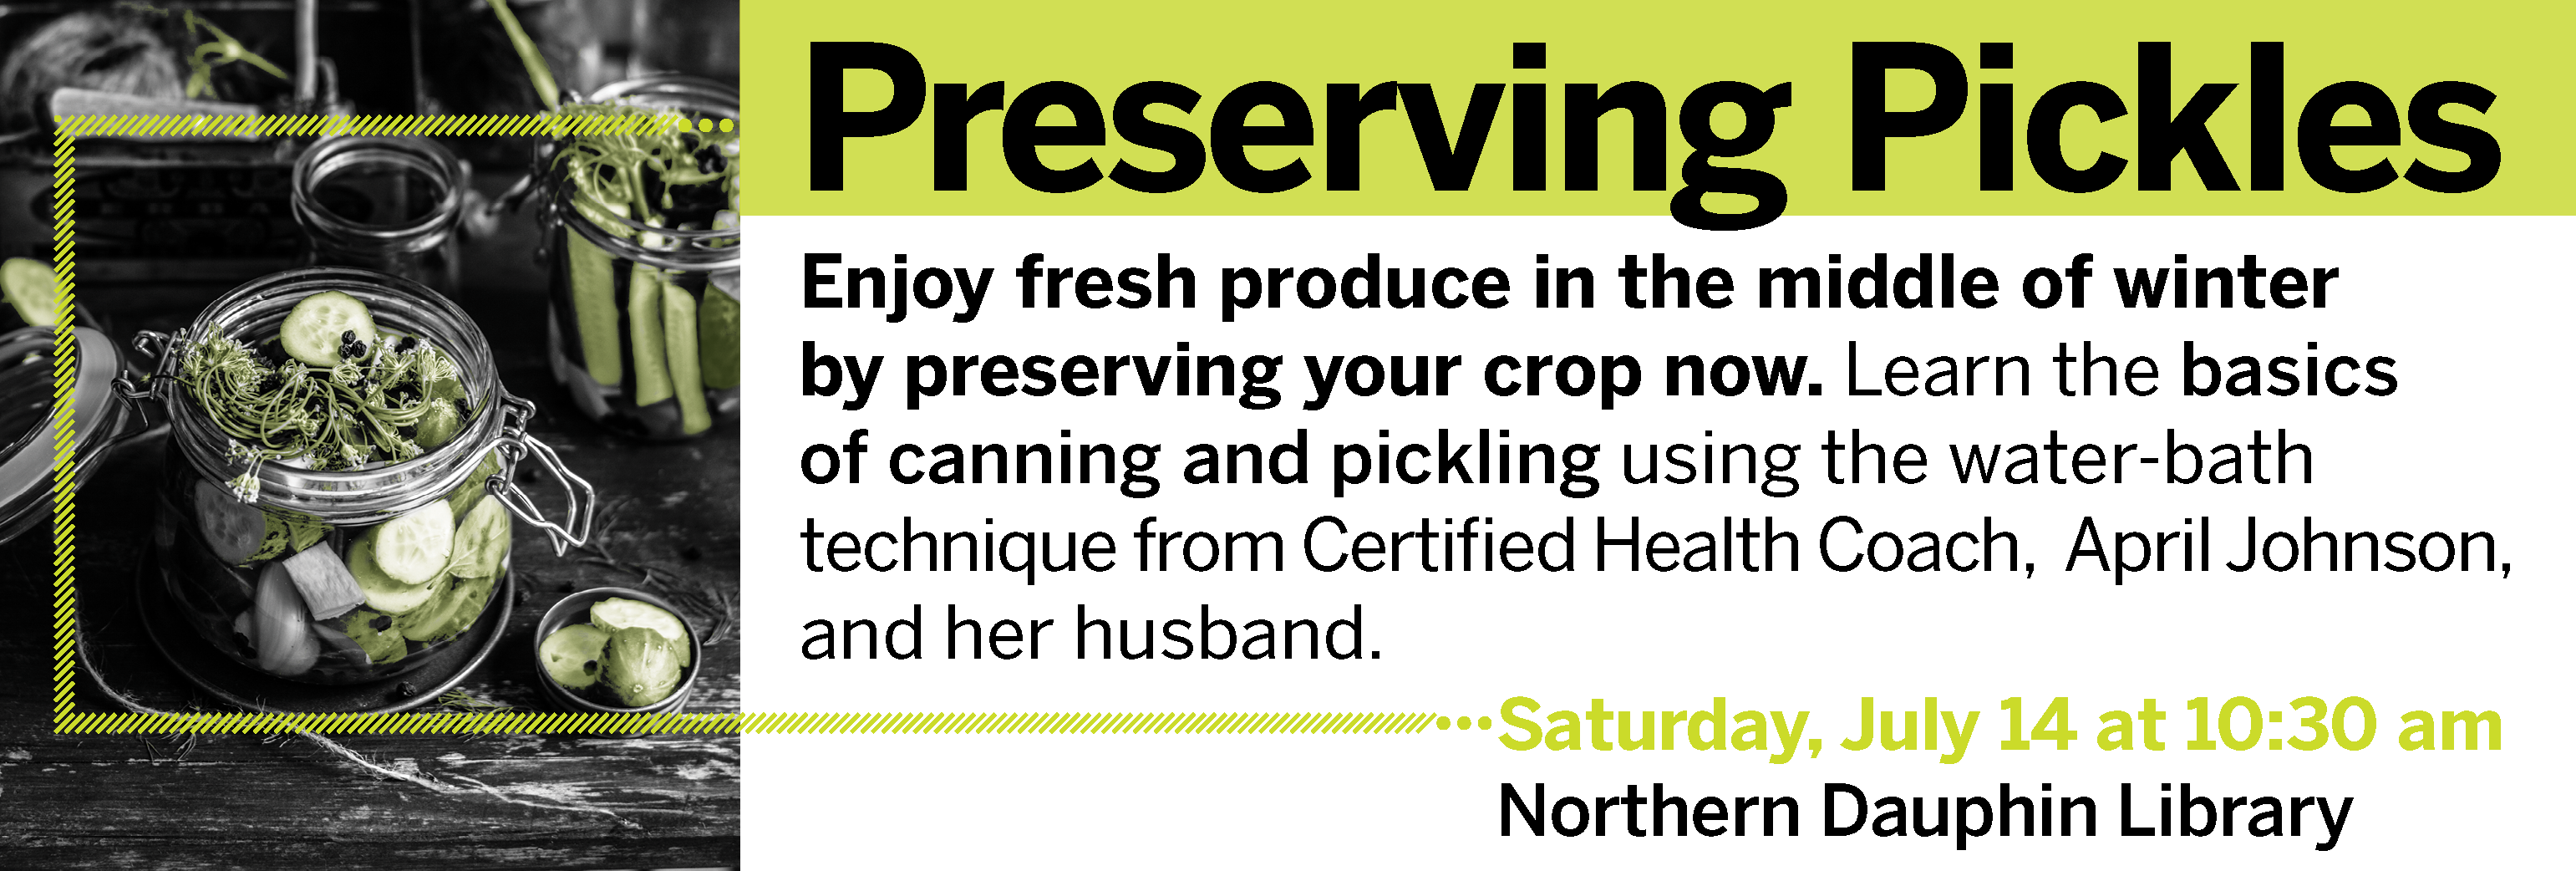 Preserving Pickles